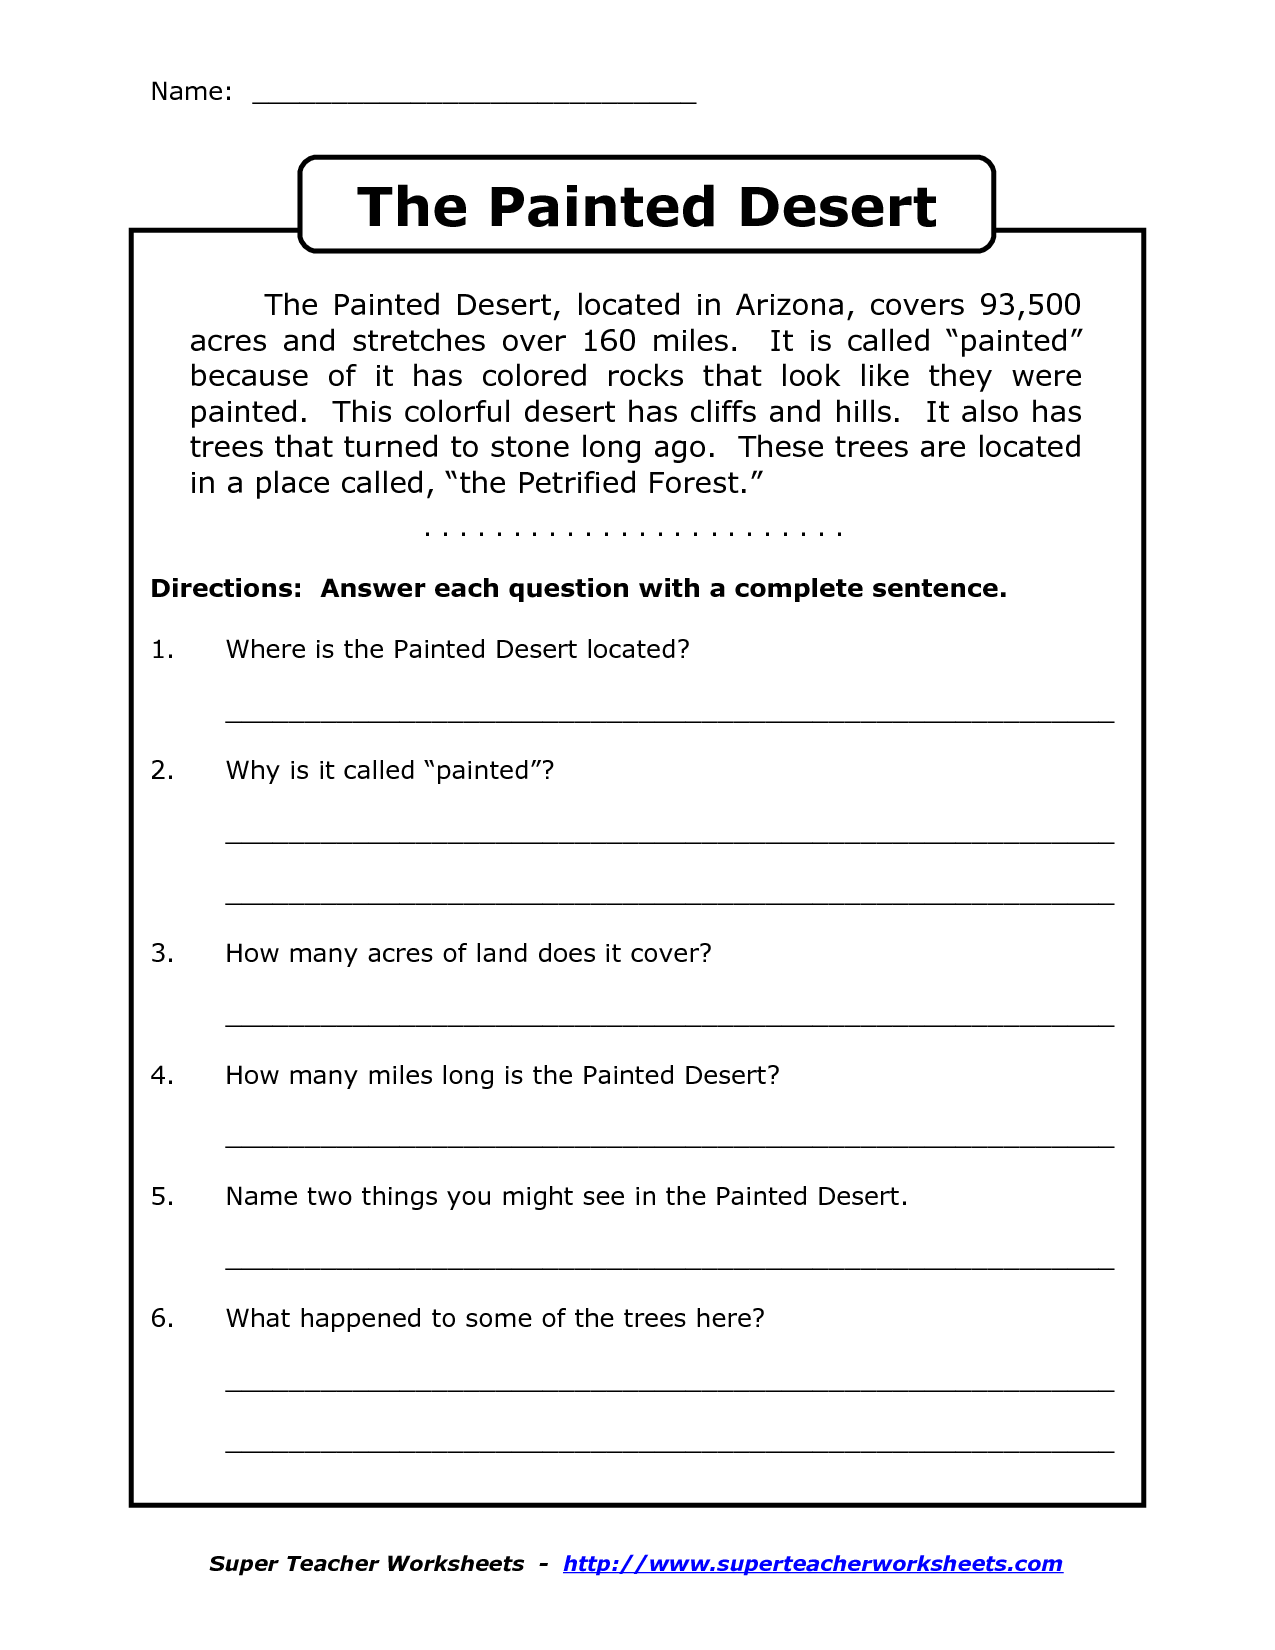 Worksheets Free Reading Worksheets For 4th Grade enrichment language worksheets google search 4th grade readingreading